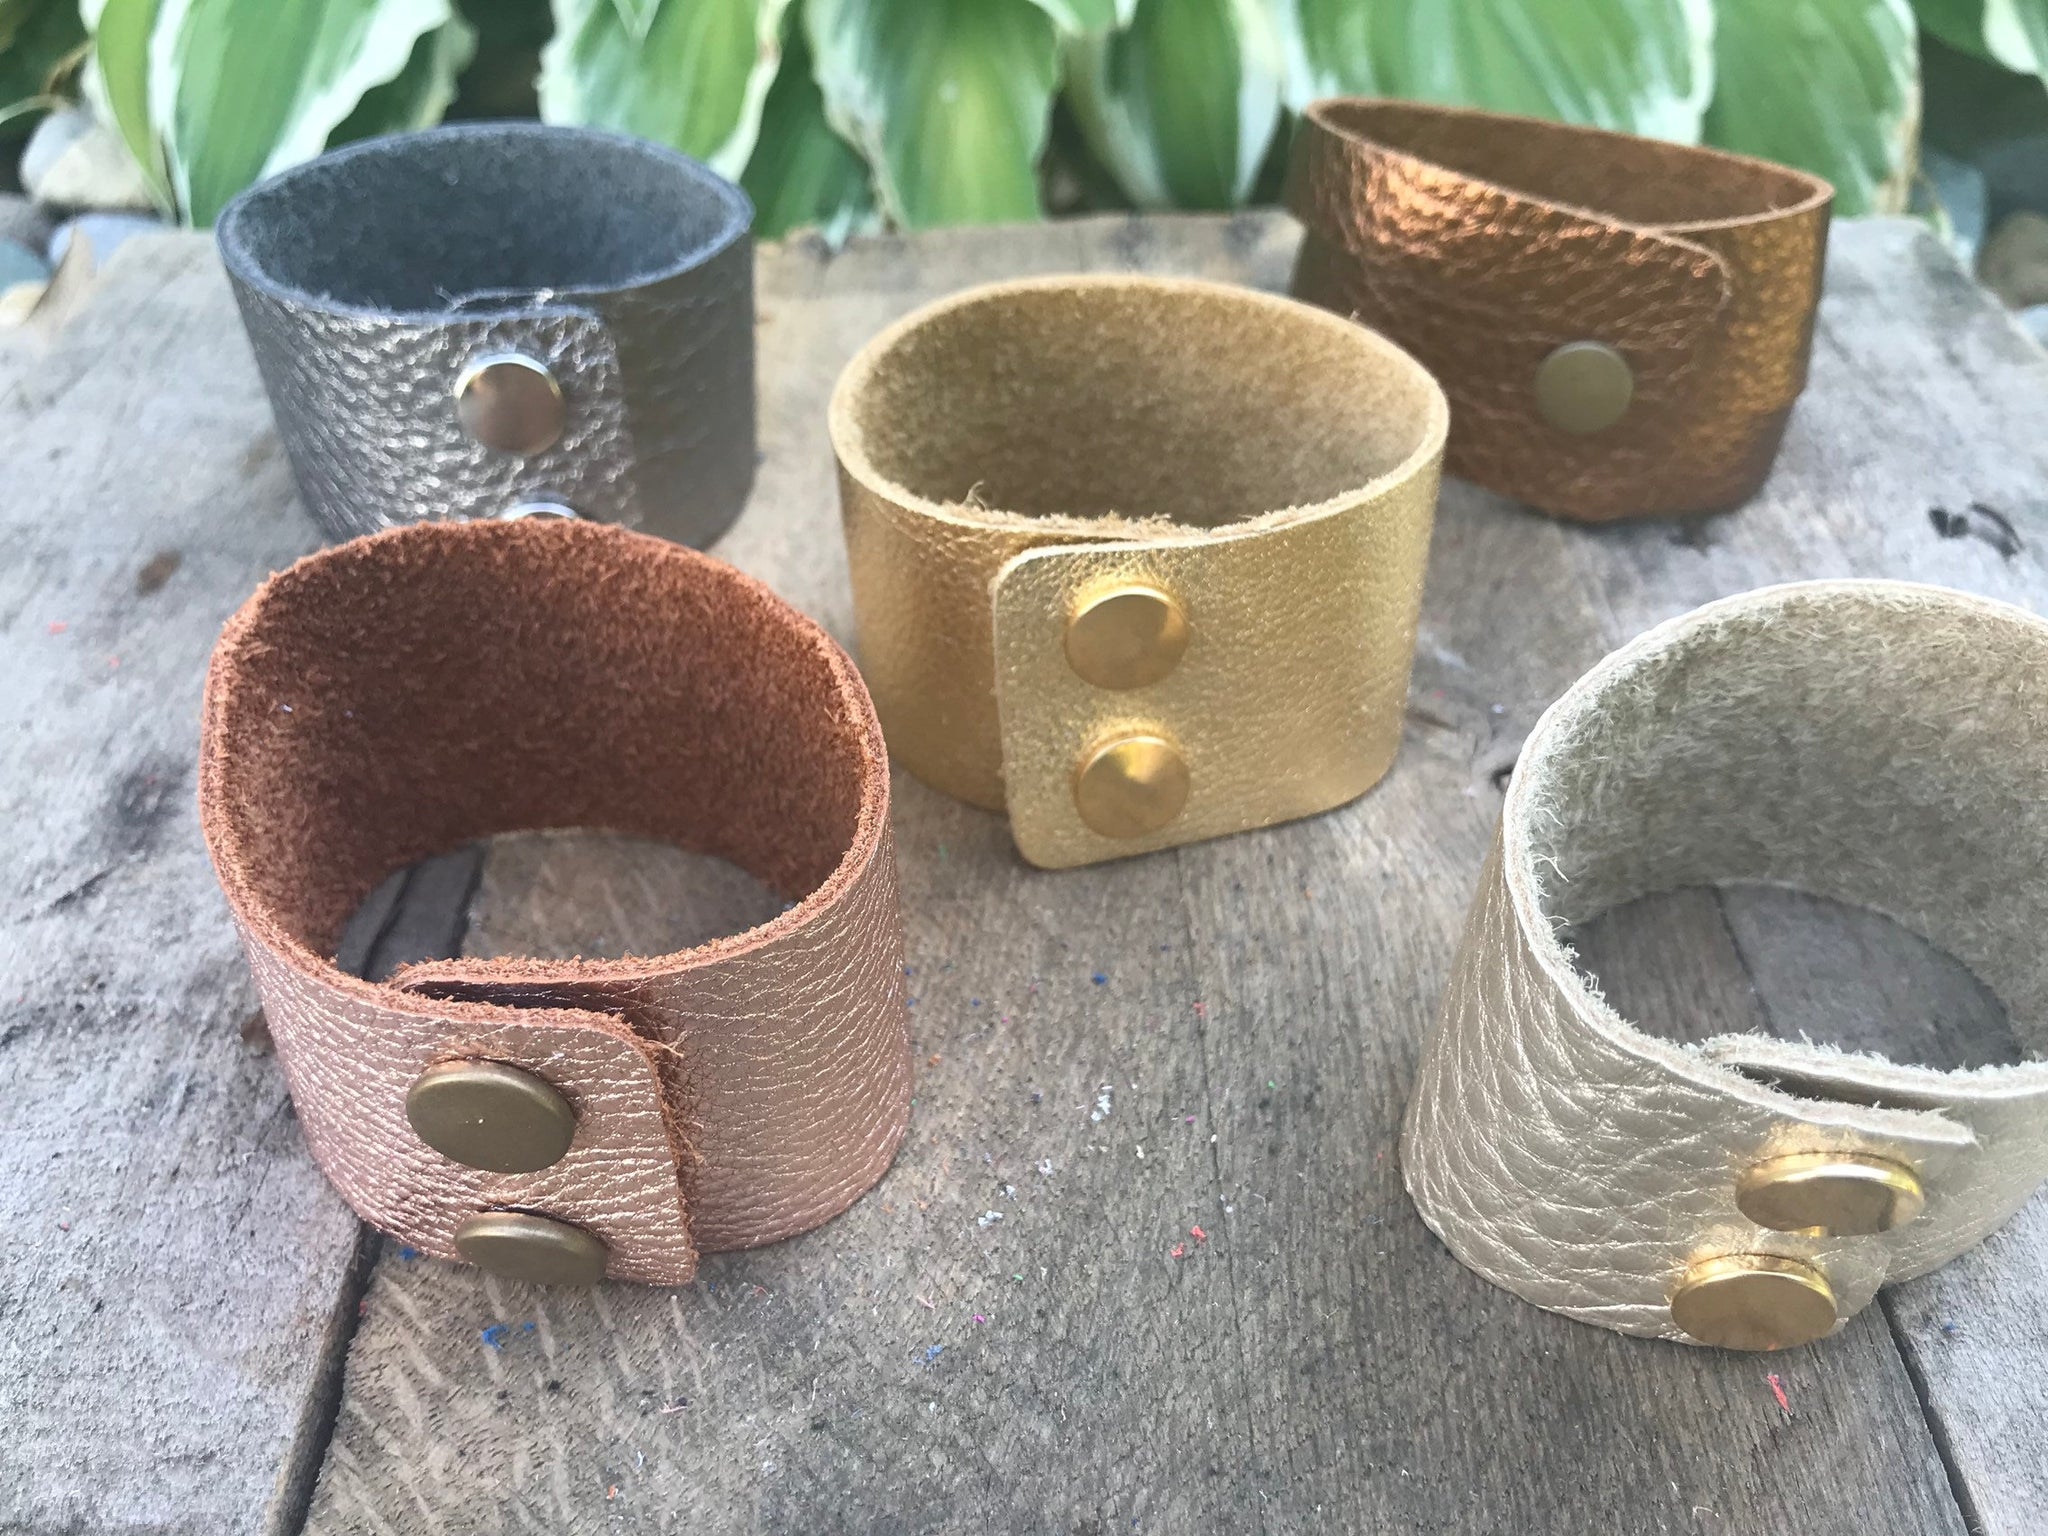 metallic-thick-cuff-leather-bracelet-solid-or-three-strap-sliced